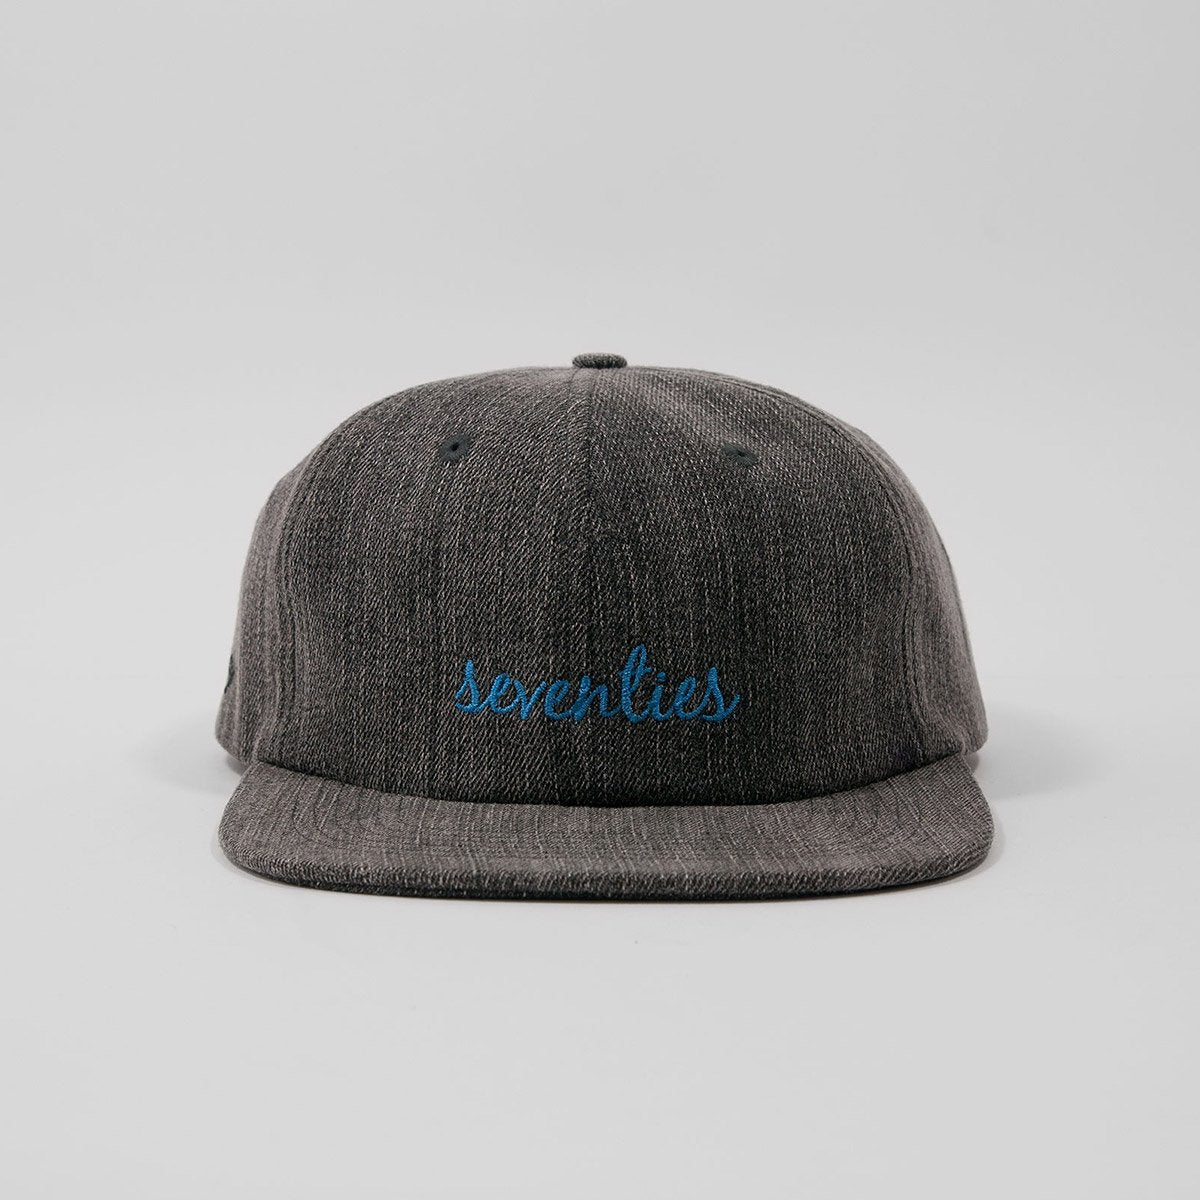 Post Decades Seventies Antifit Six panel cap